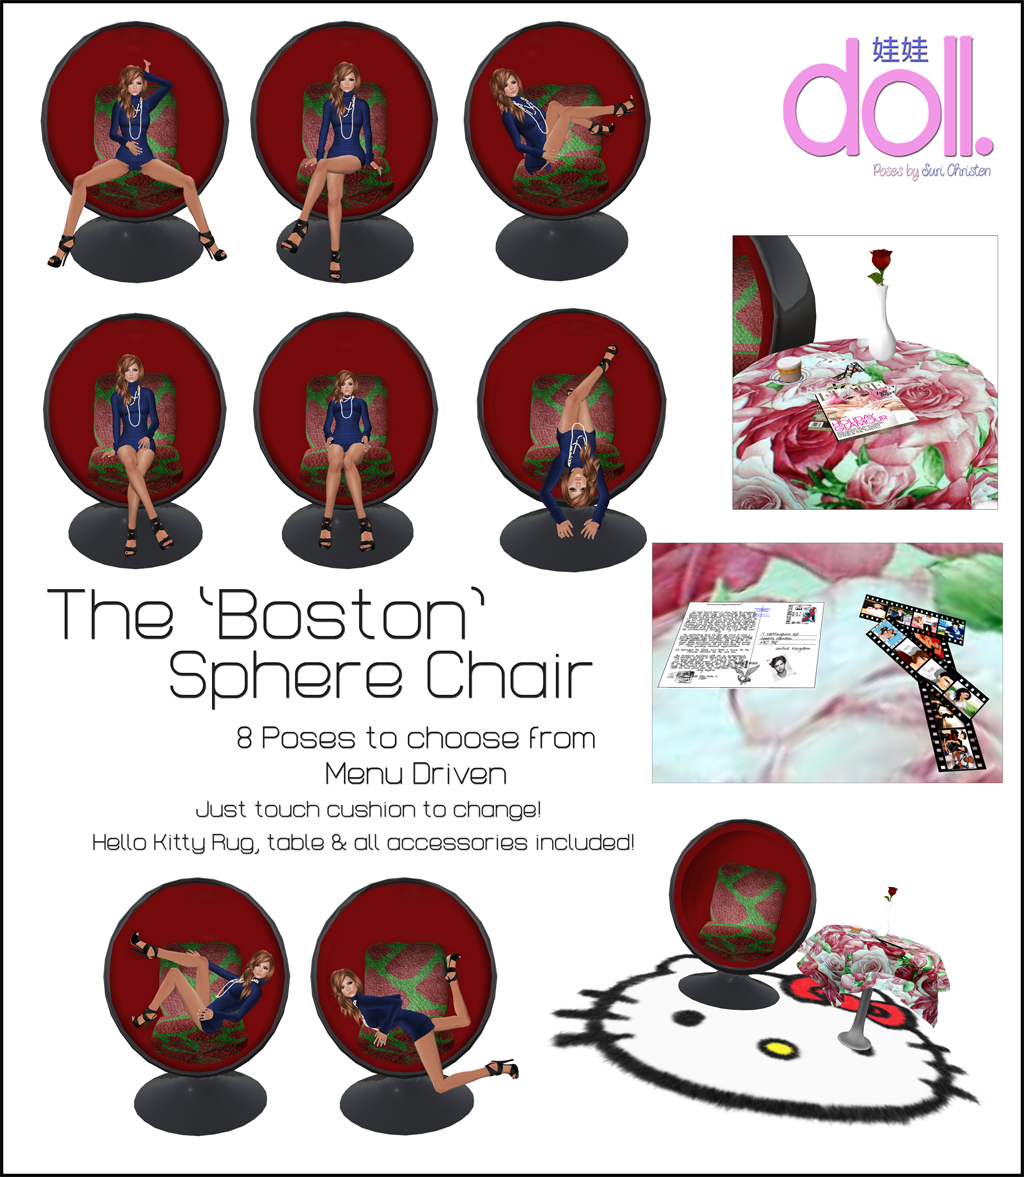 [doll.] The Boston Sphere Chair